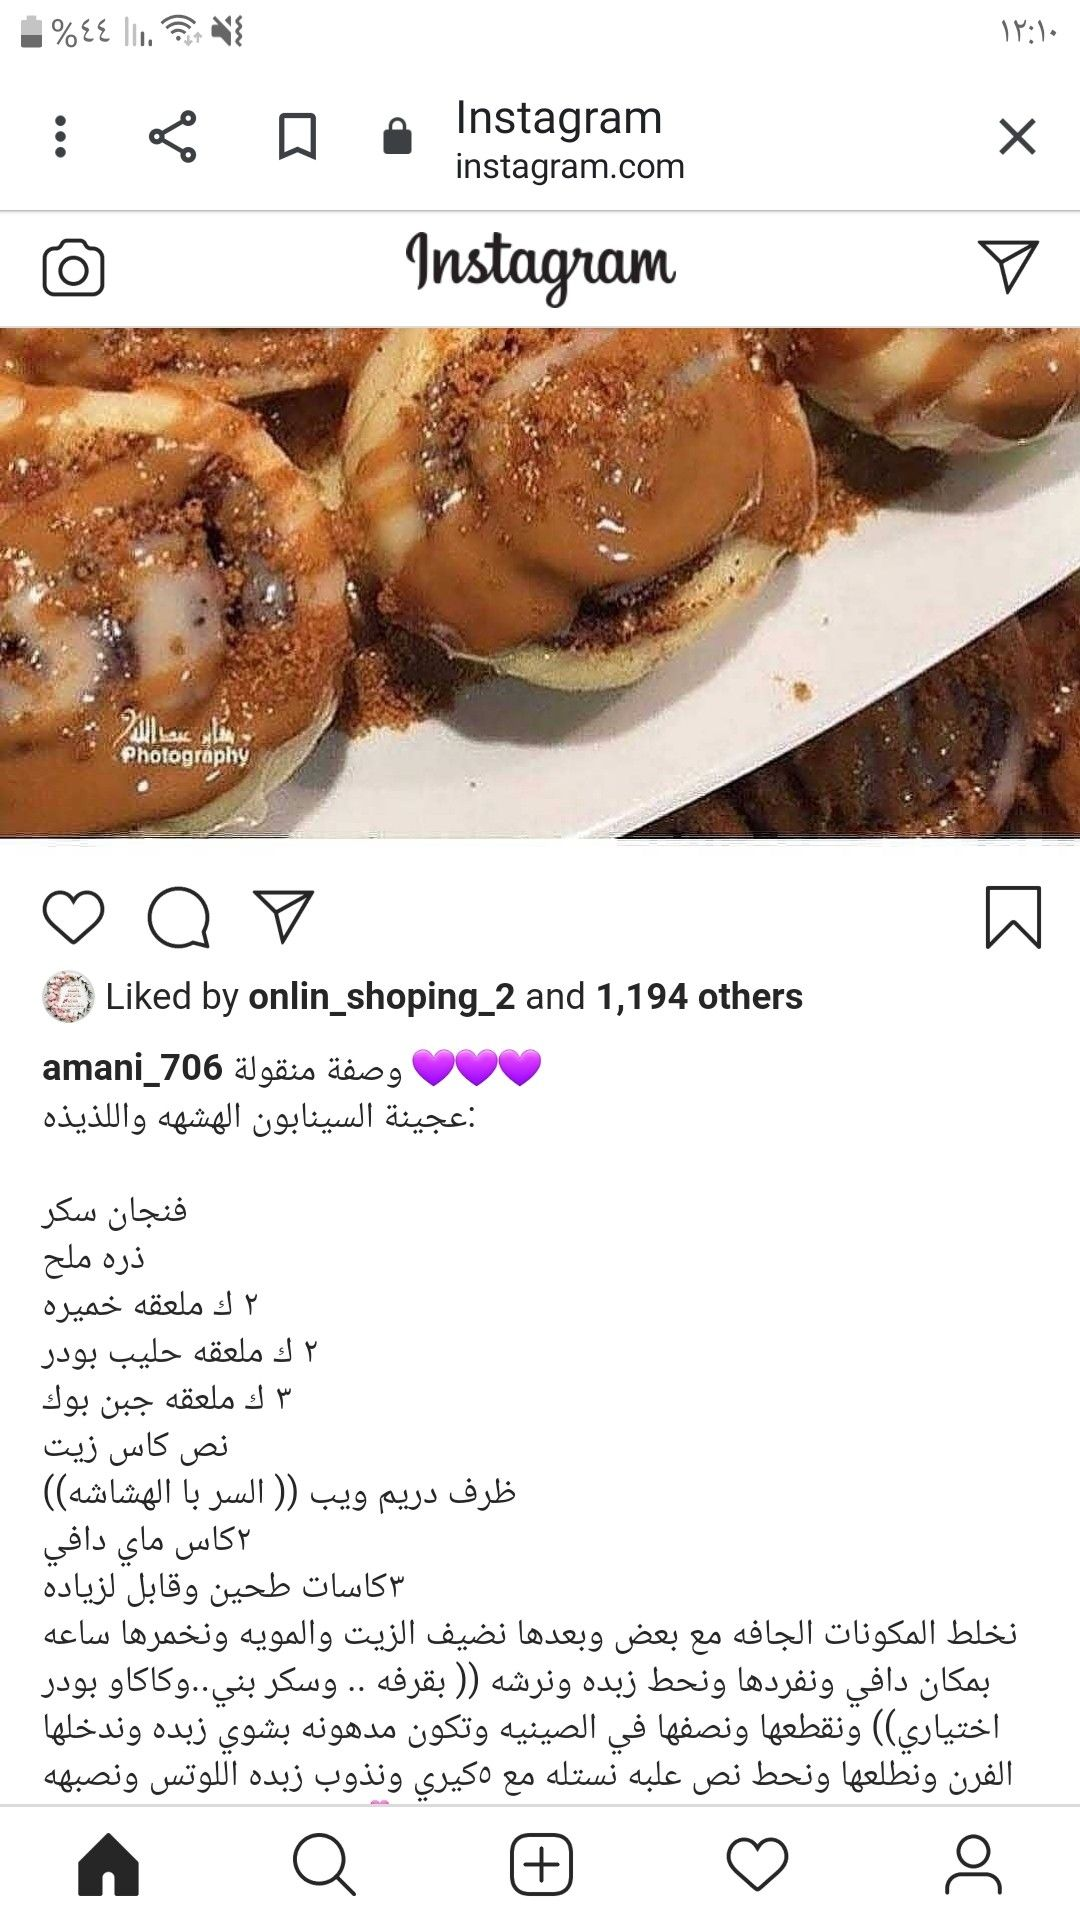 Pin By Haidy On حالي ومالح Recipes Bread Recipes Instagram Photography